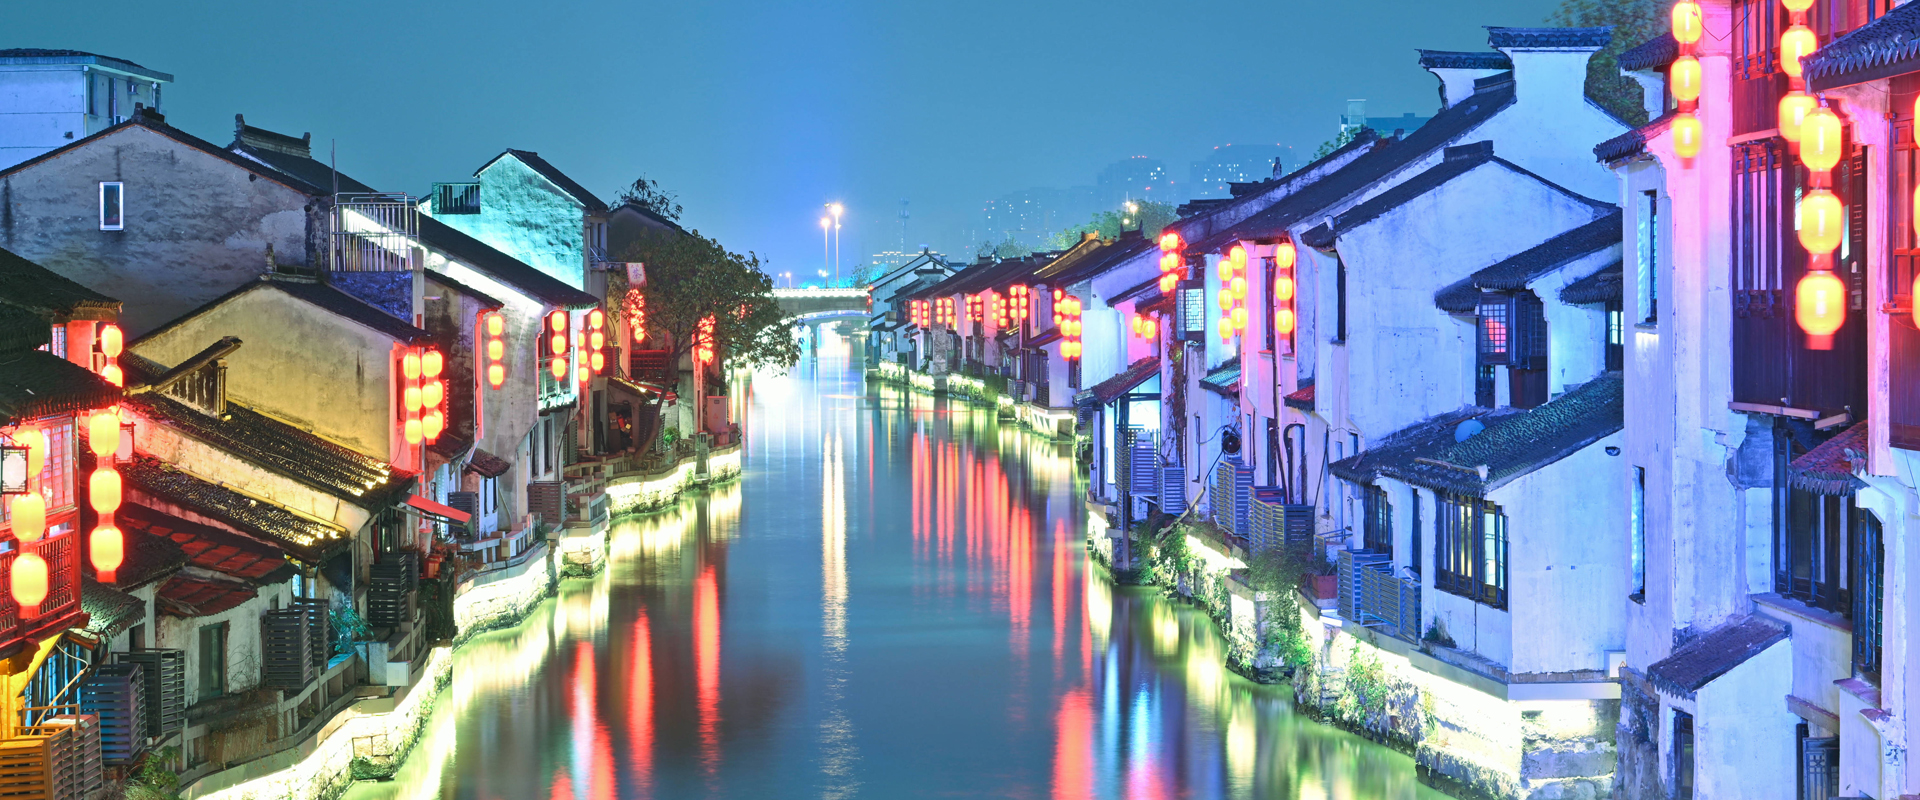 Stunning night views of Nanchang Street in Wuxi